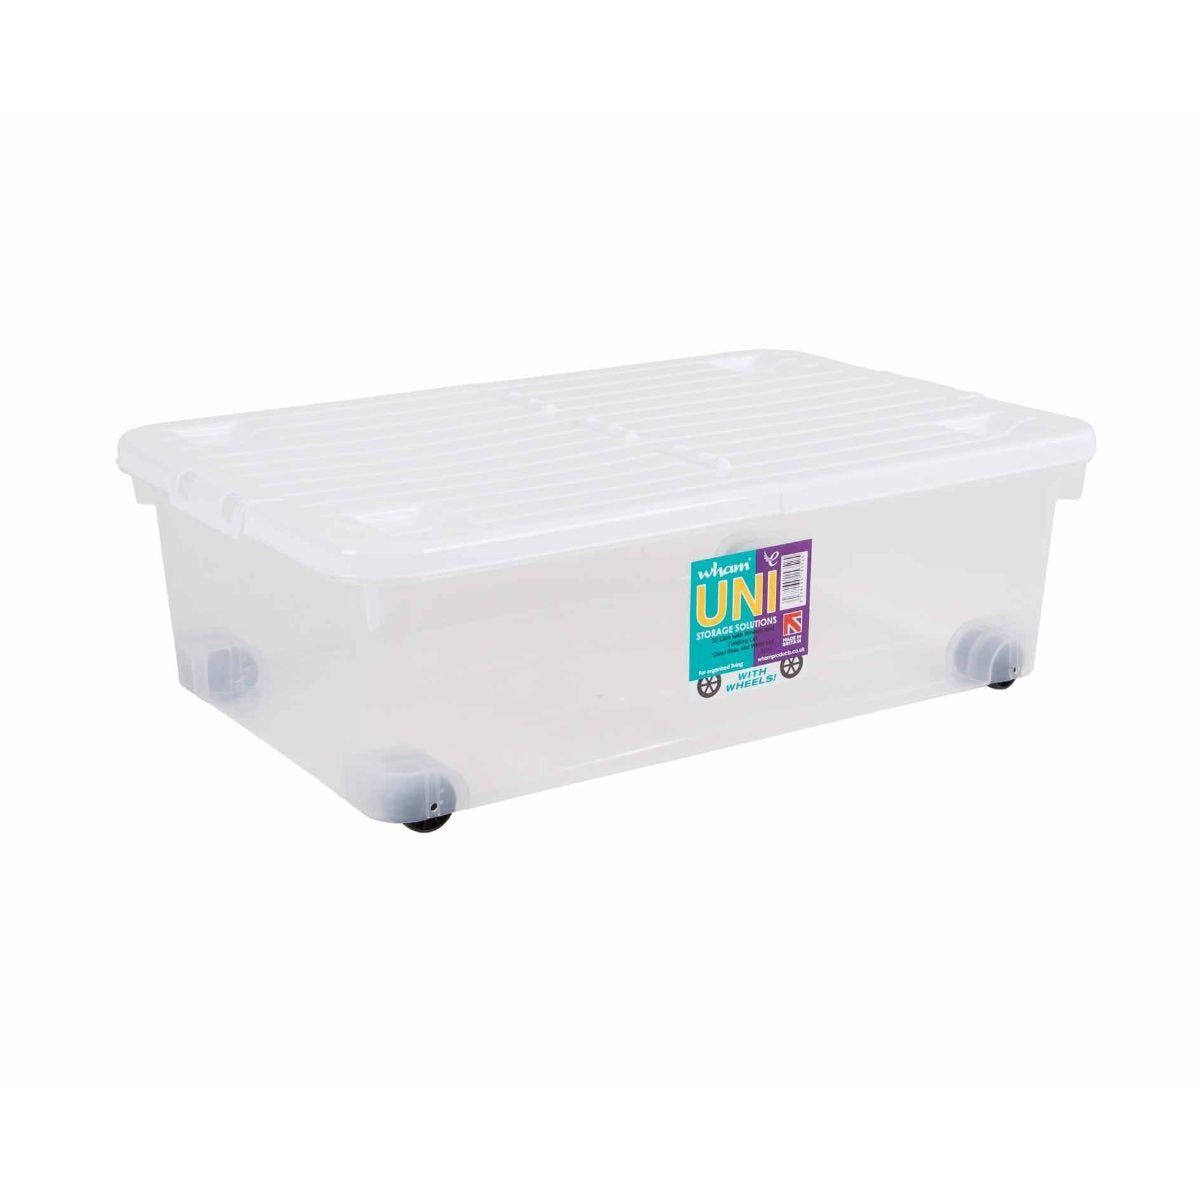 Wham Wheeled Storage Boxes 32 Litres Pack of 3